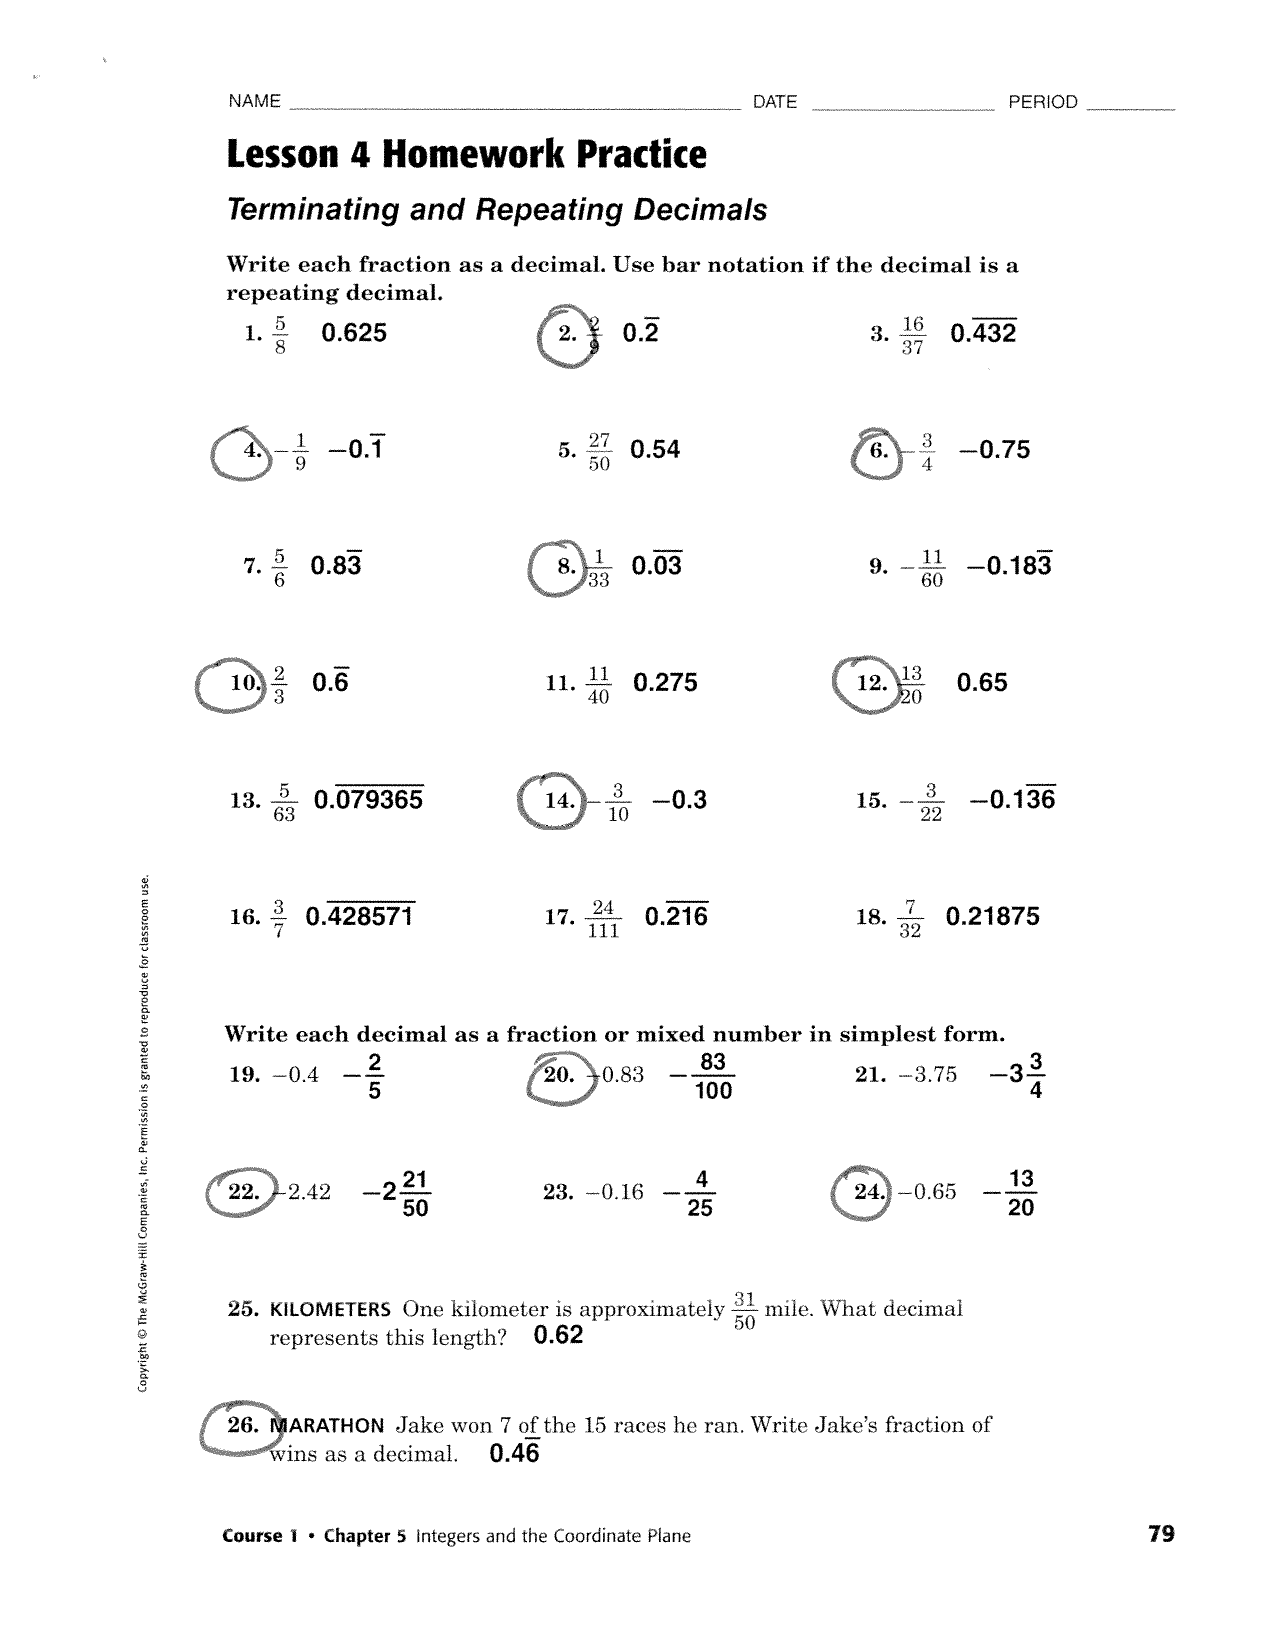 worksheet Terminating And Repeating Decimals Worksheet 013356301 1 4f31628607571236e62534cde36b8162 png